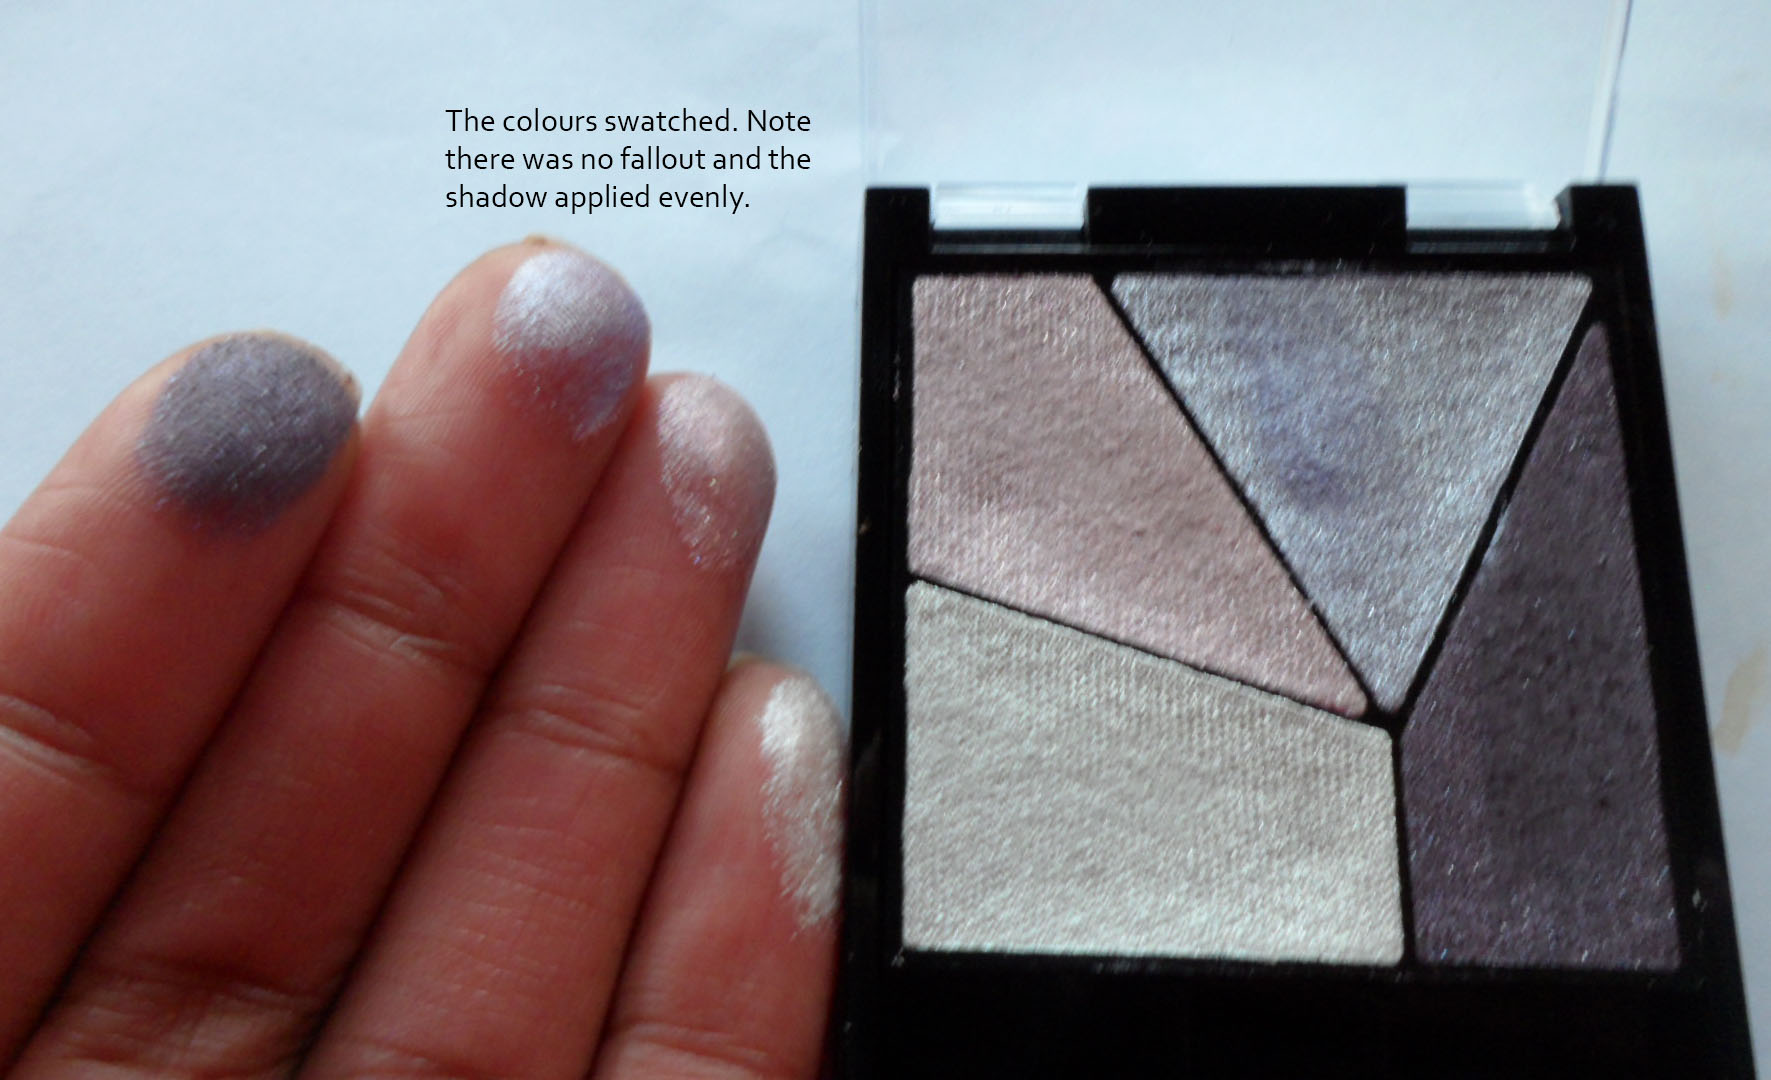 Swatched, the quad reveals very pretty shimmery shades.